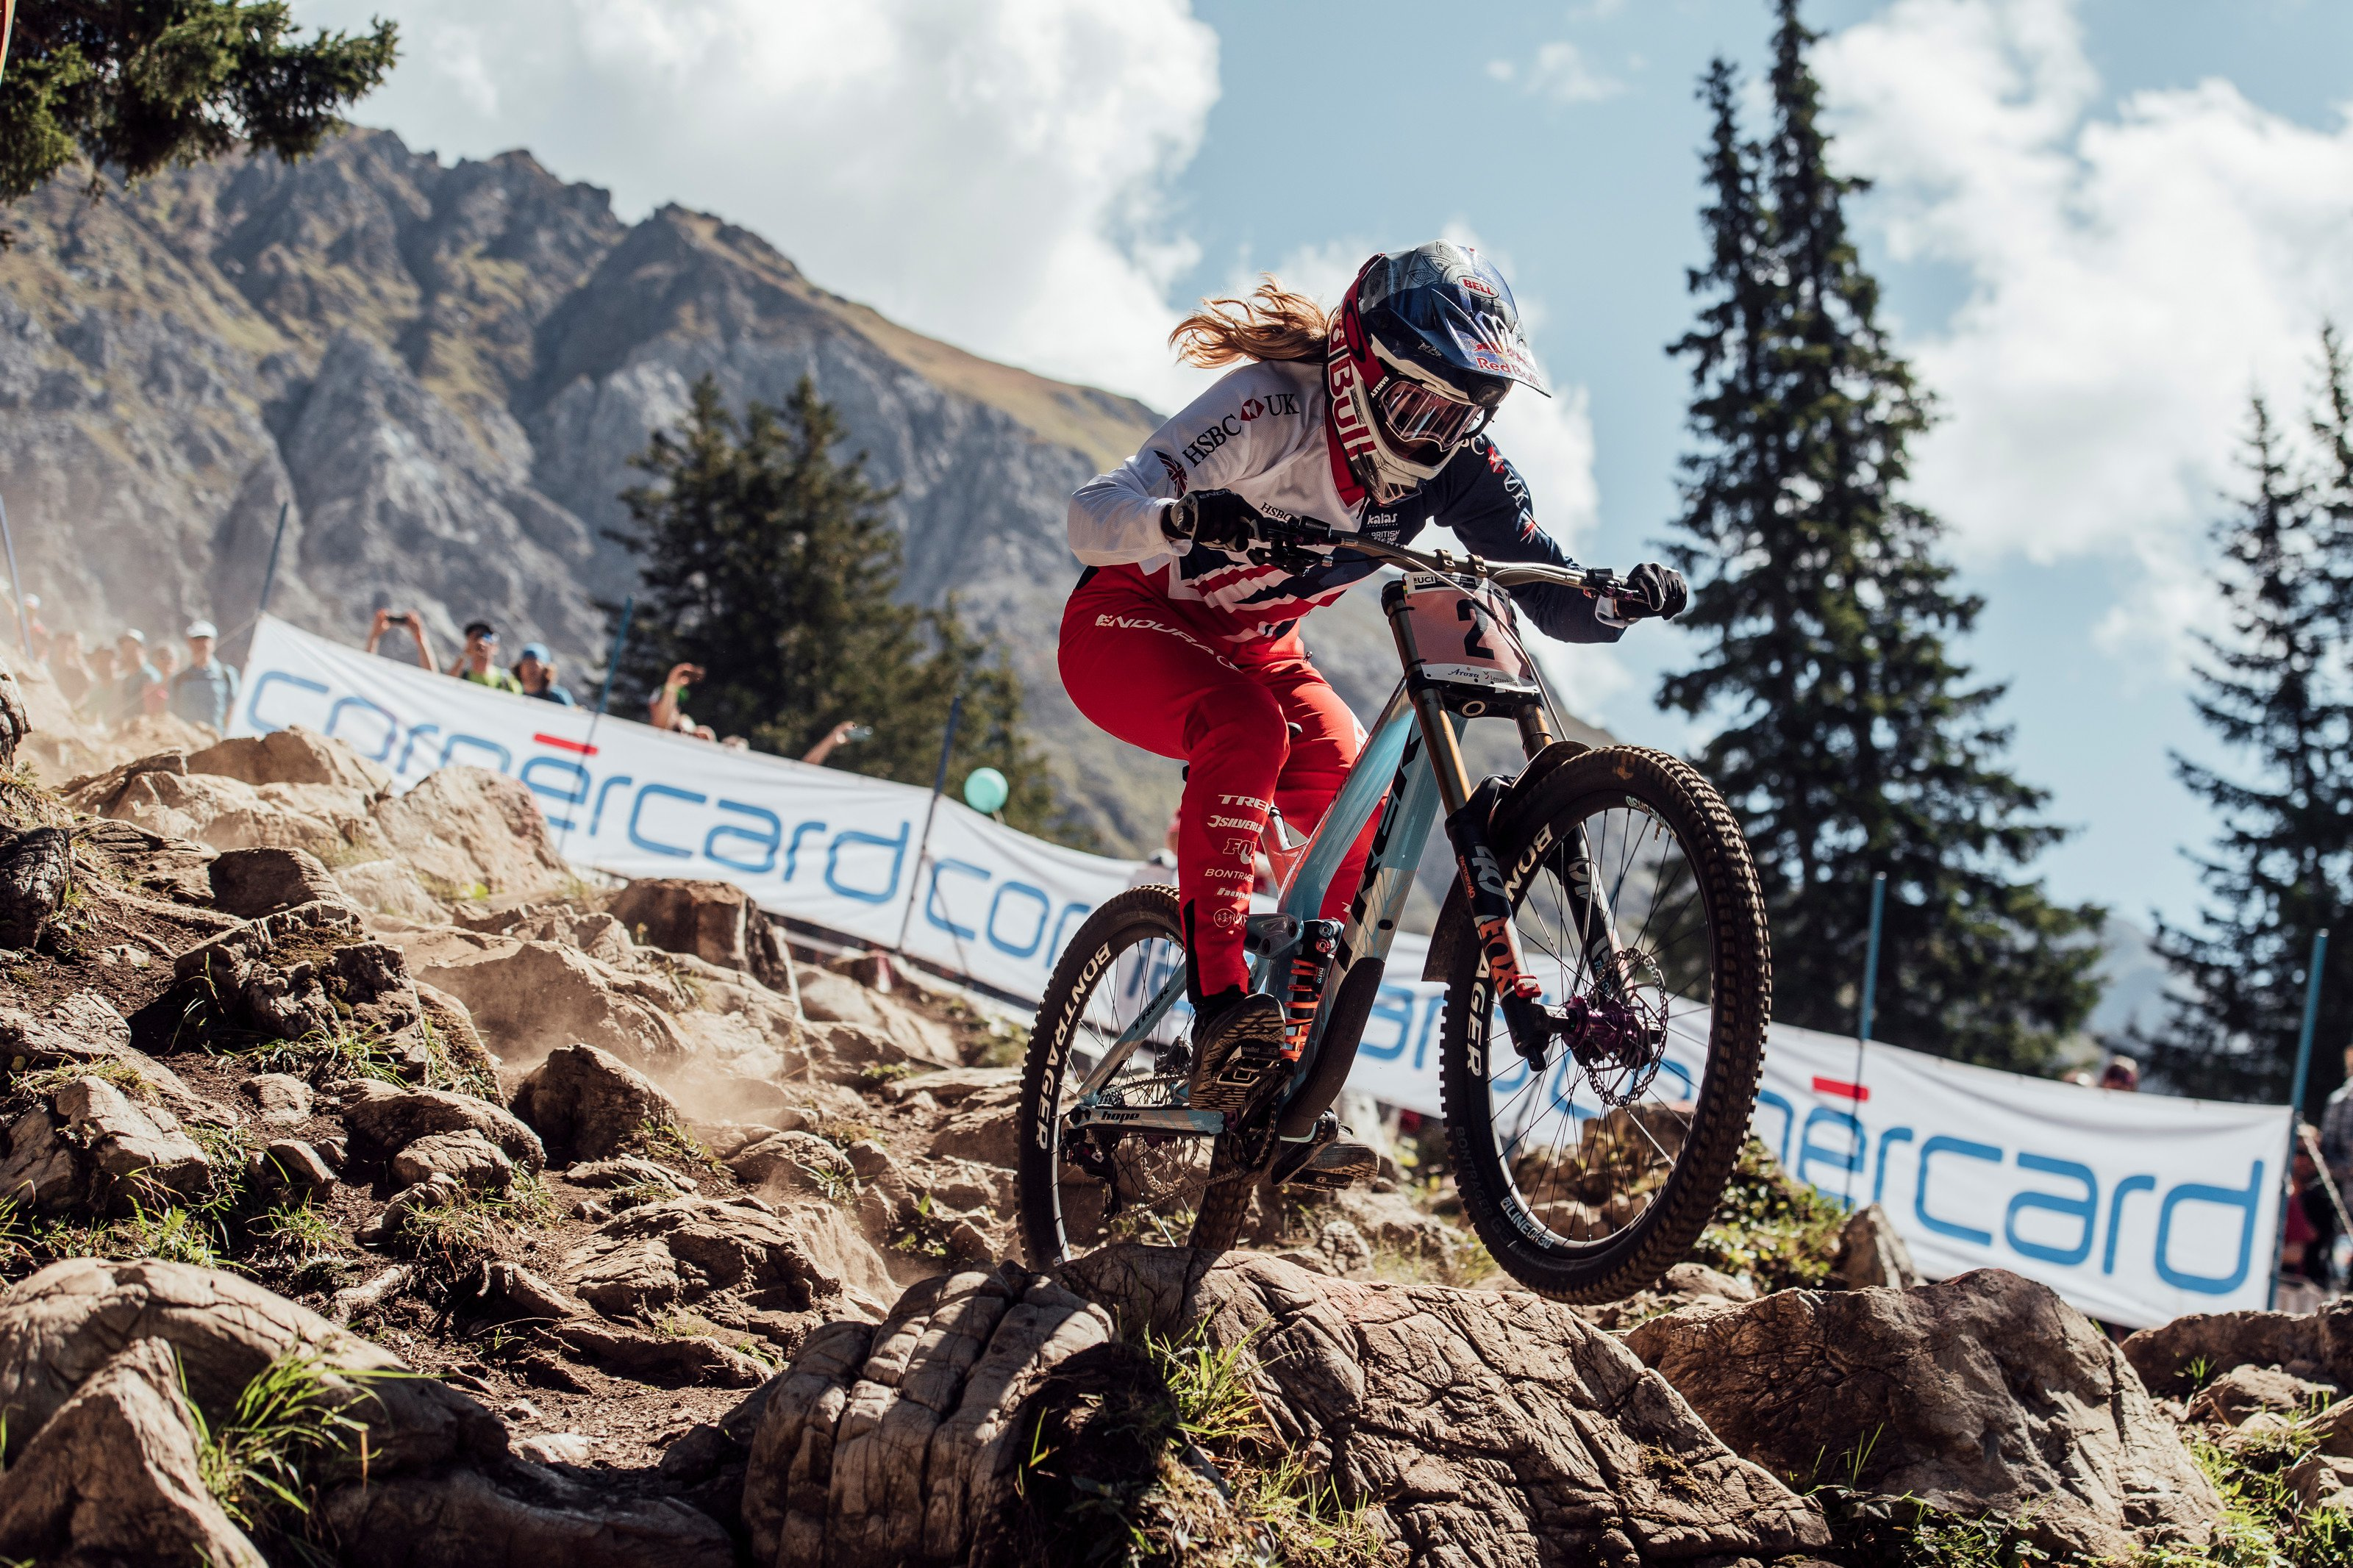 Rachel Atherton in Lenzerheide for the 2018 DH World Championships